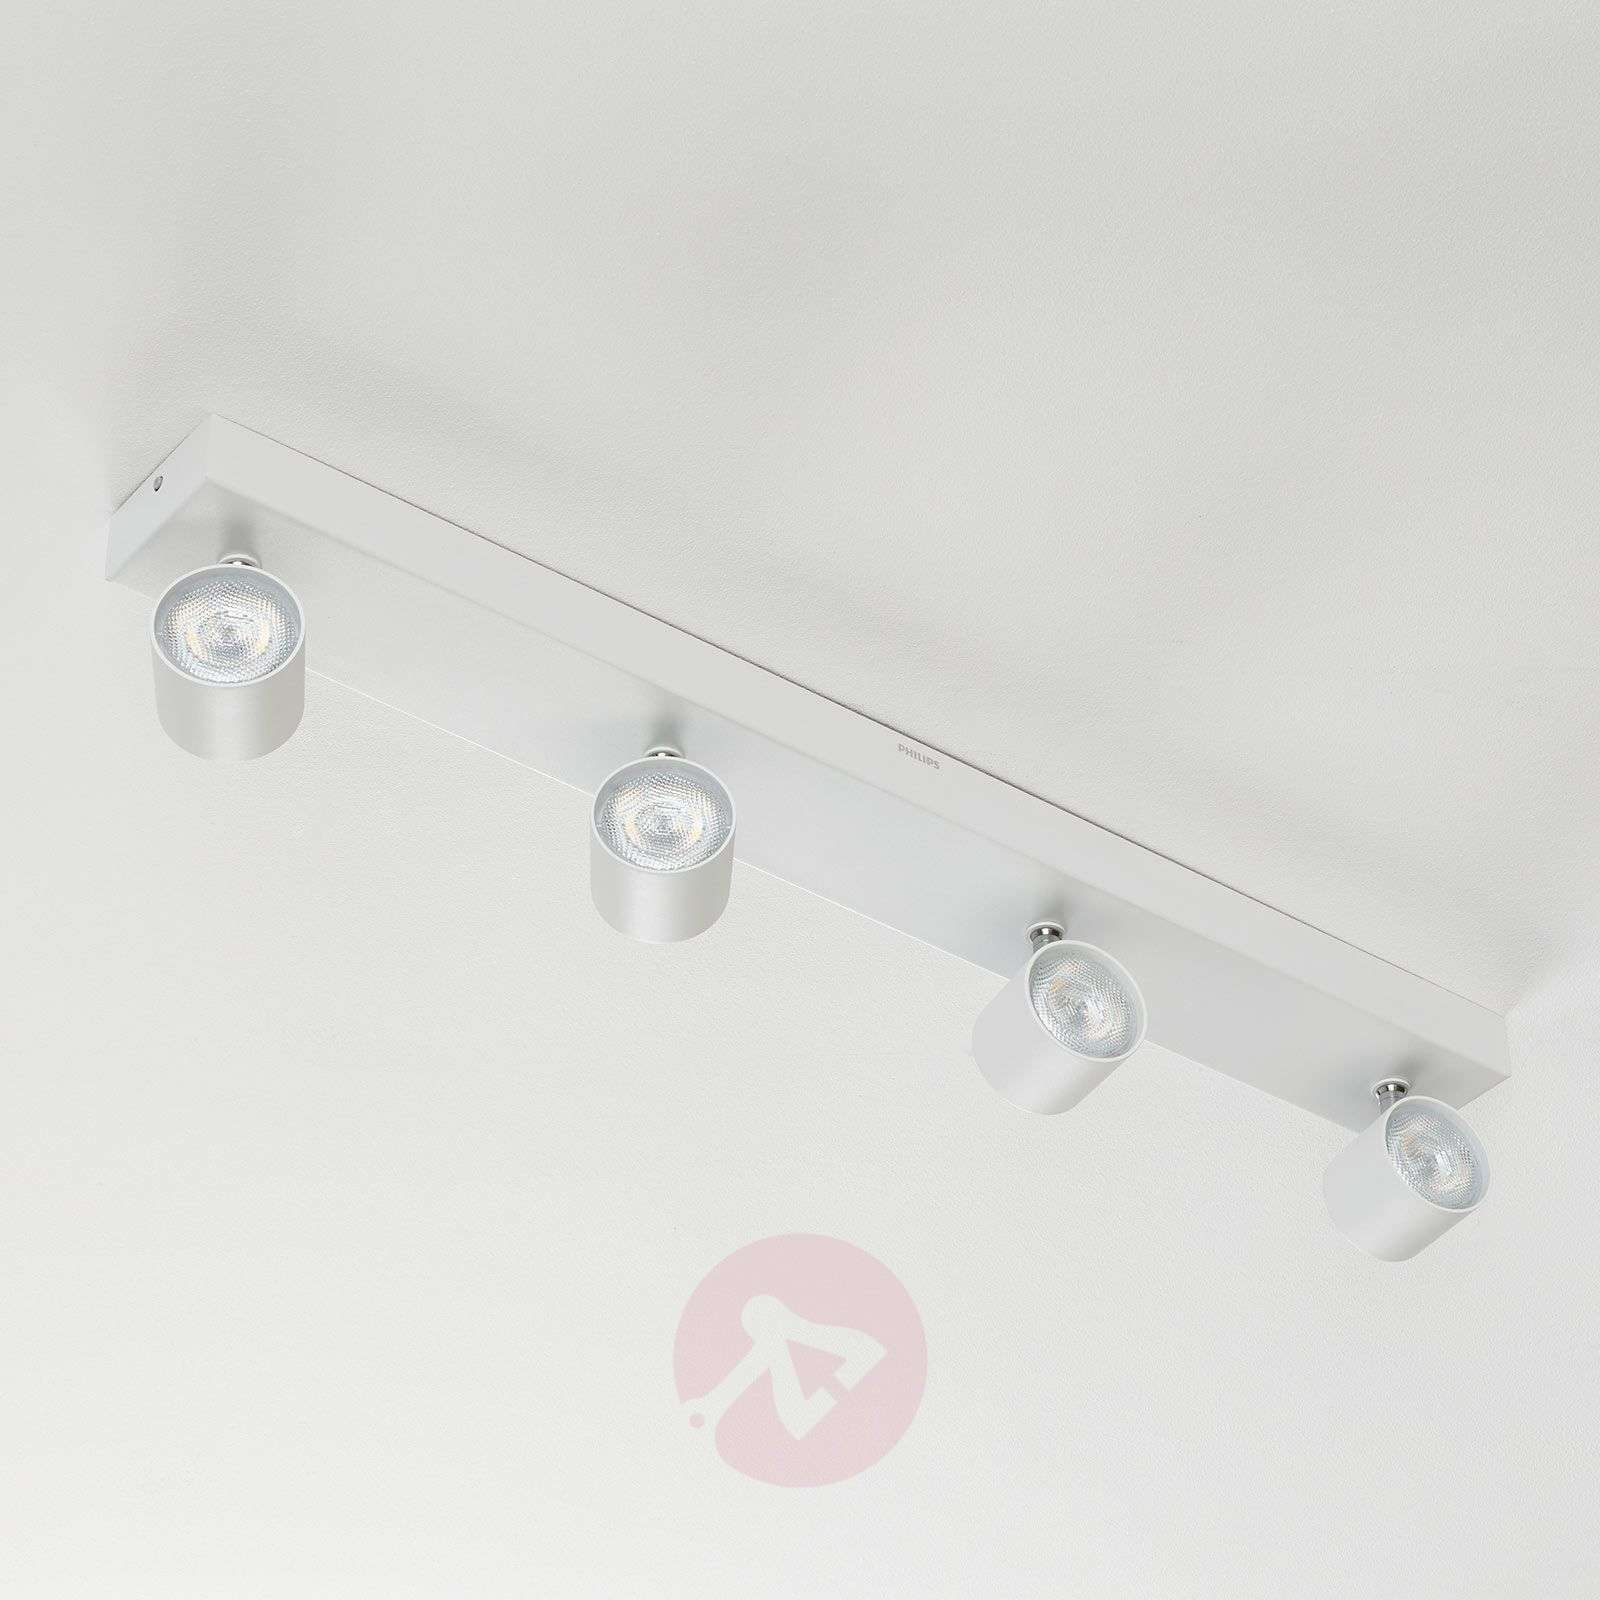 Star 4-lamps LED plafondspot wit, warmglow-7531965-02